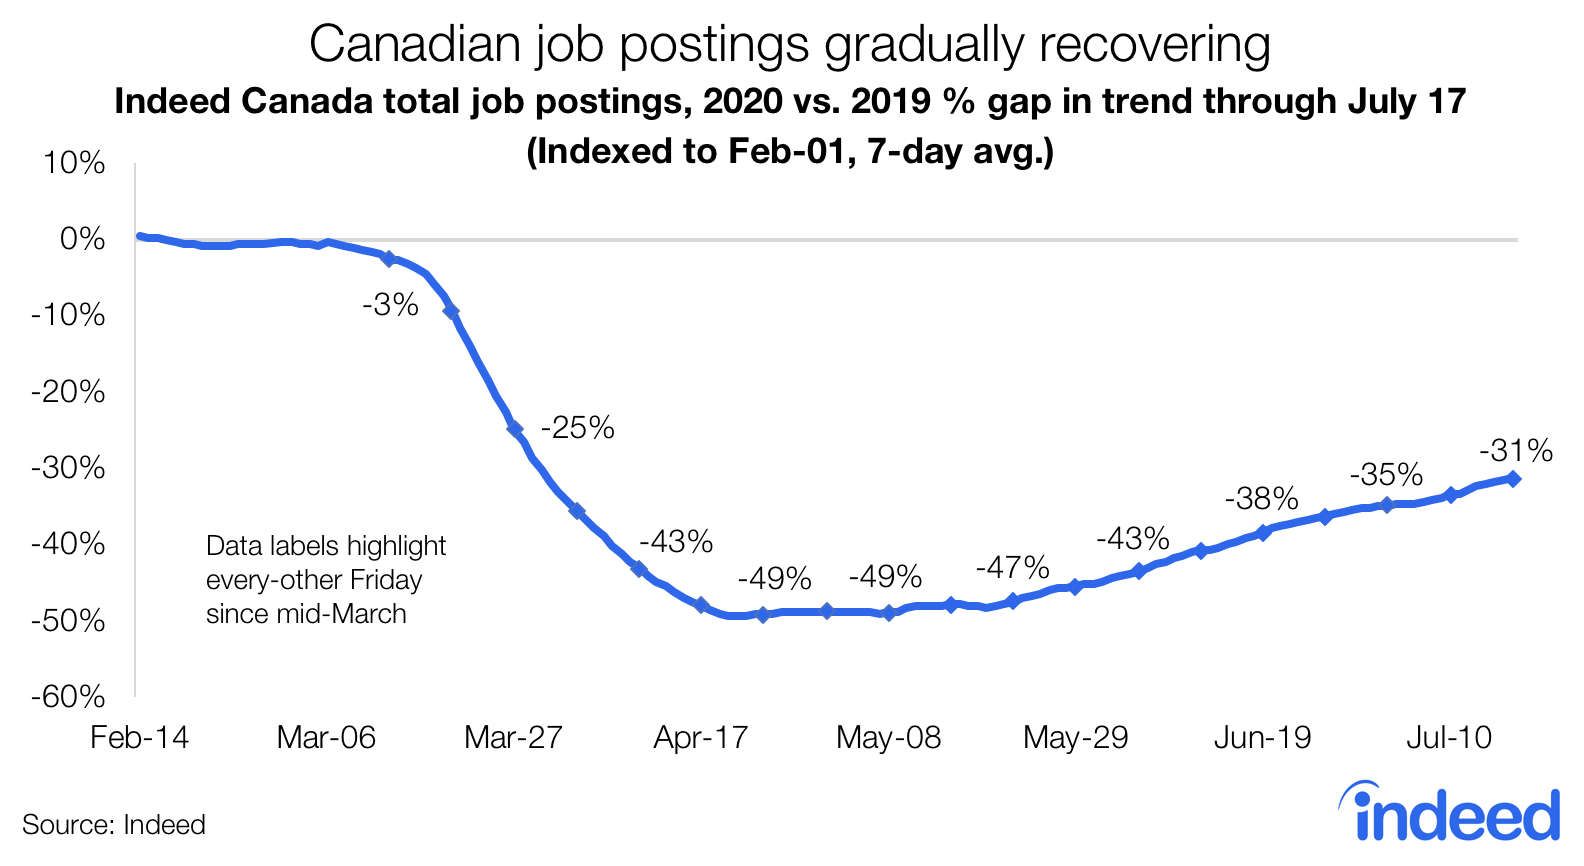 Line graph shows Canadian job postings gradually recovering.